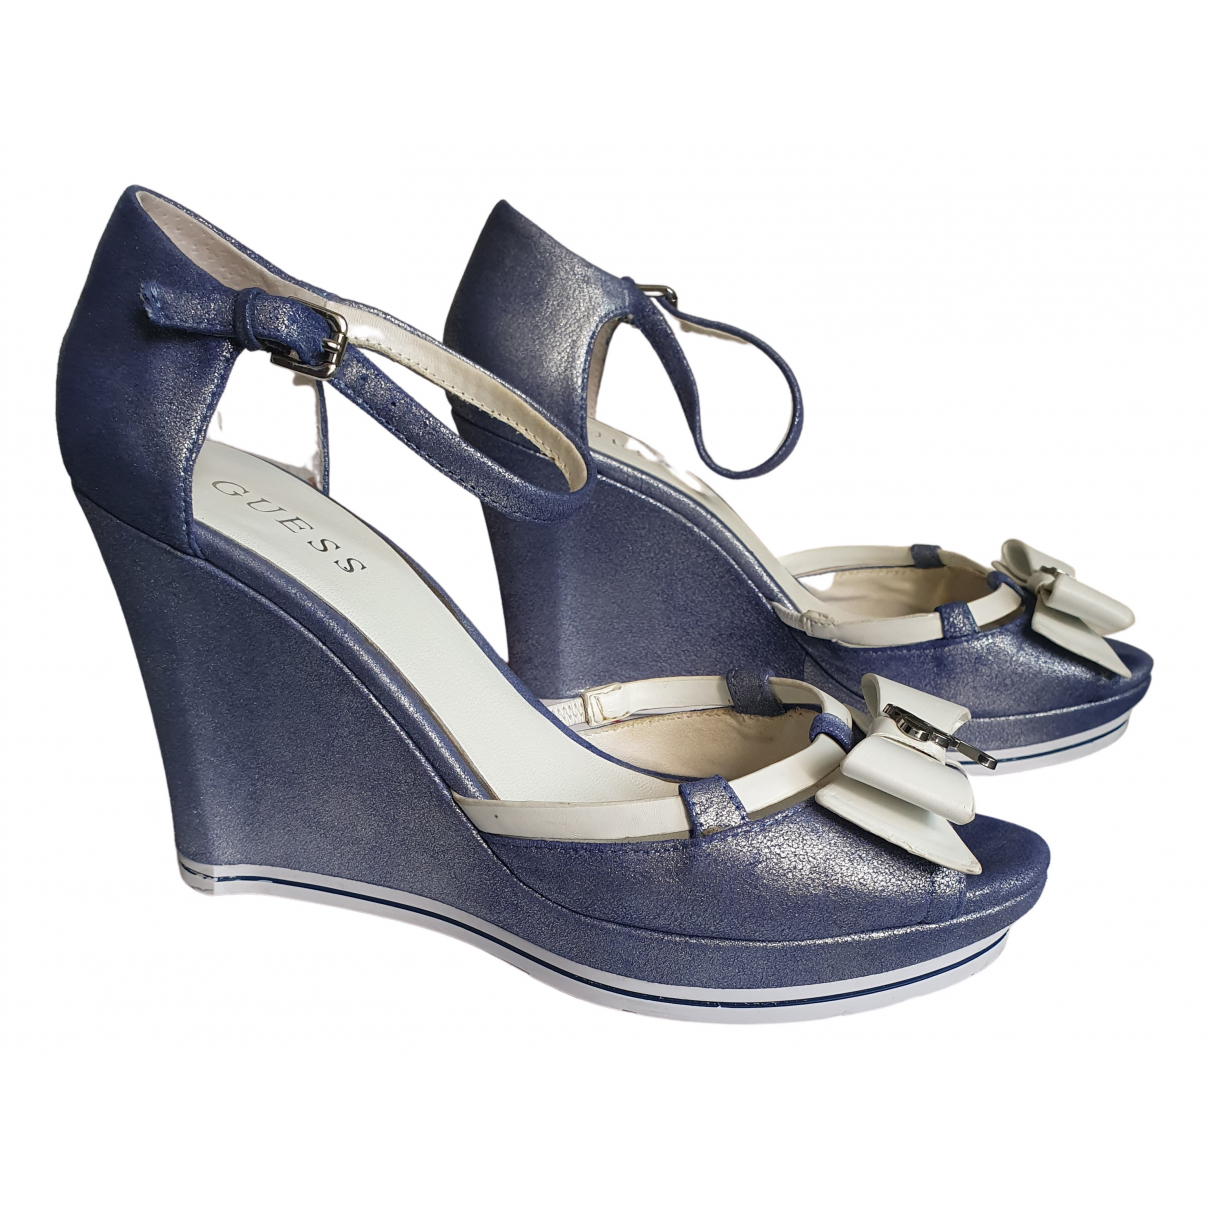 Guess \N Sandalen in  Blau Lackleder